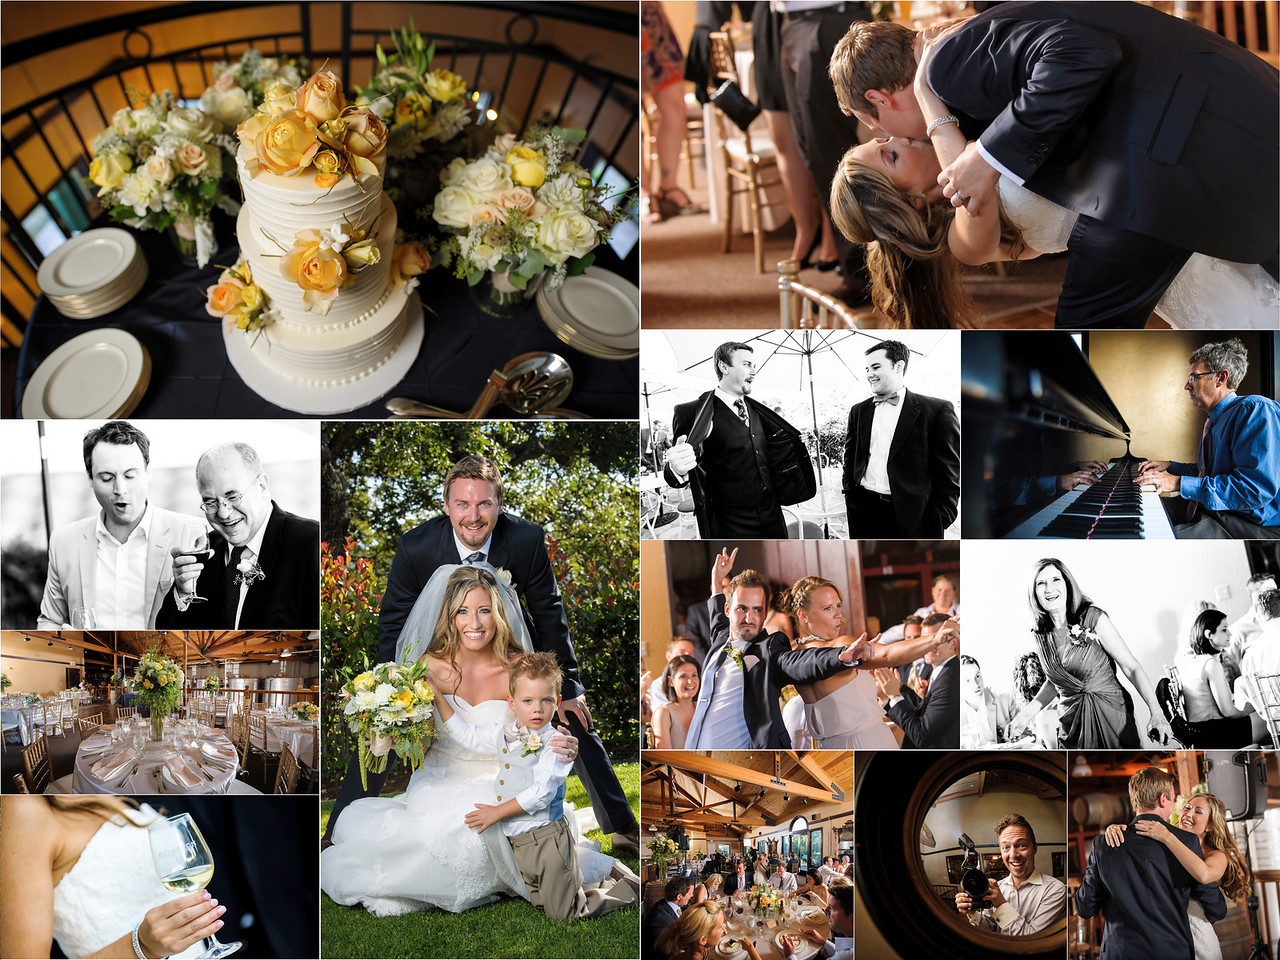 Erica_and_Justin_Byington_Winery_Los_Gatos_Wedding_Photography_4x6_Photo_Board_06